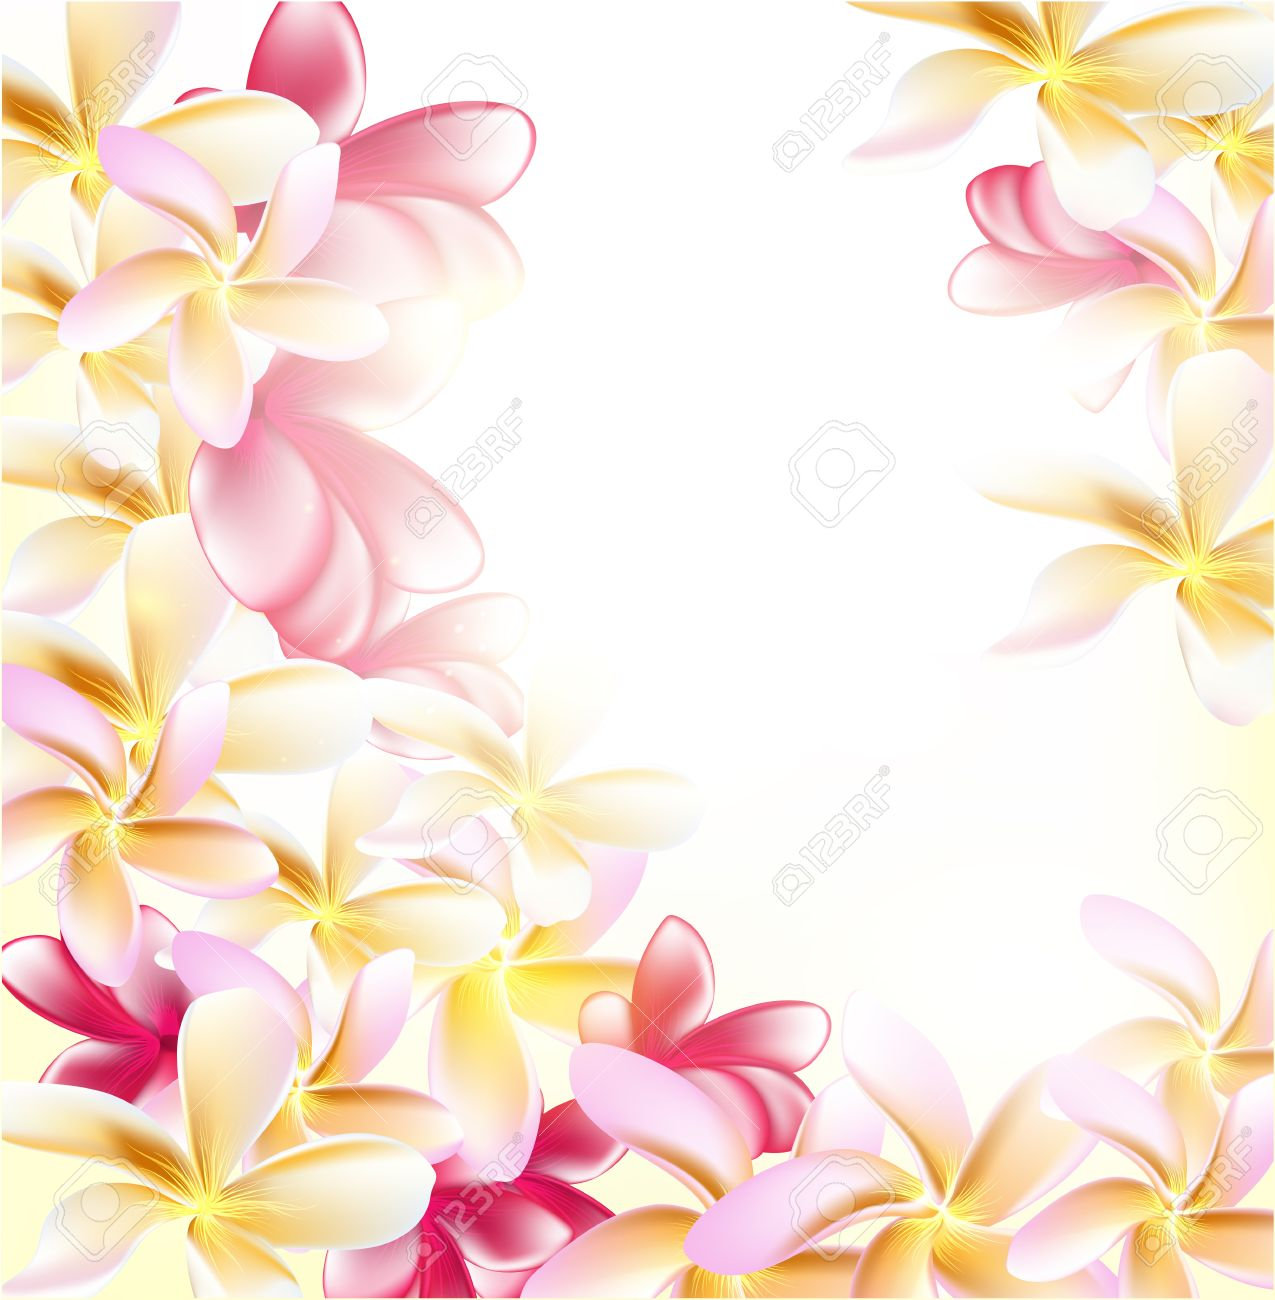 Pink Gardenia Flowers On White Background For Design Royalty Free